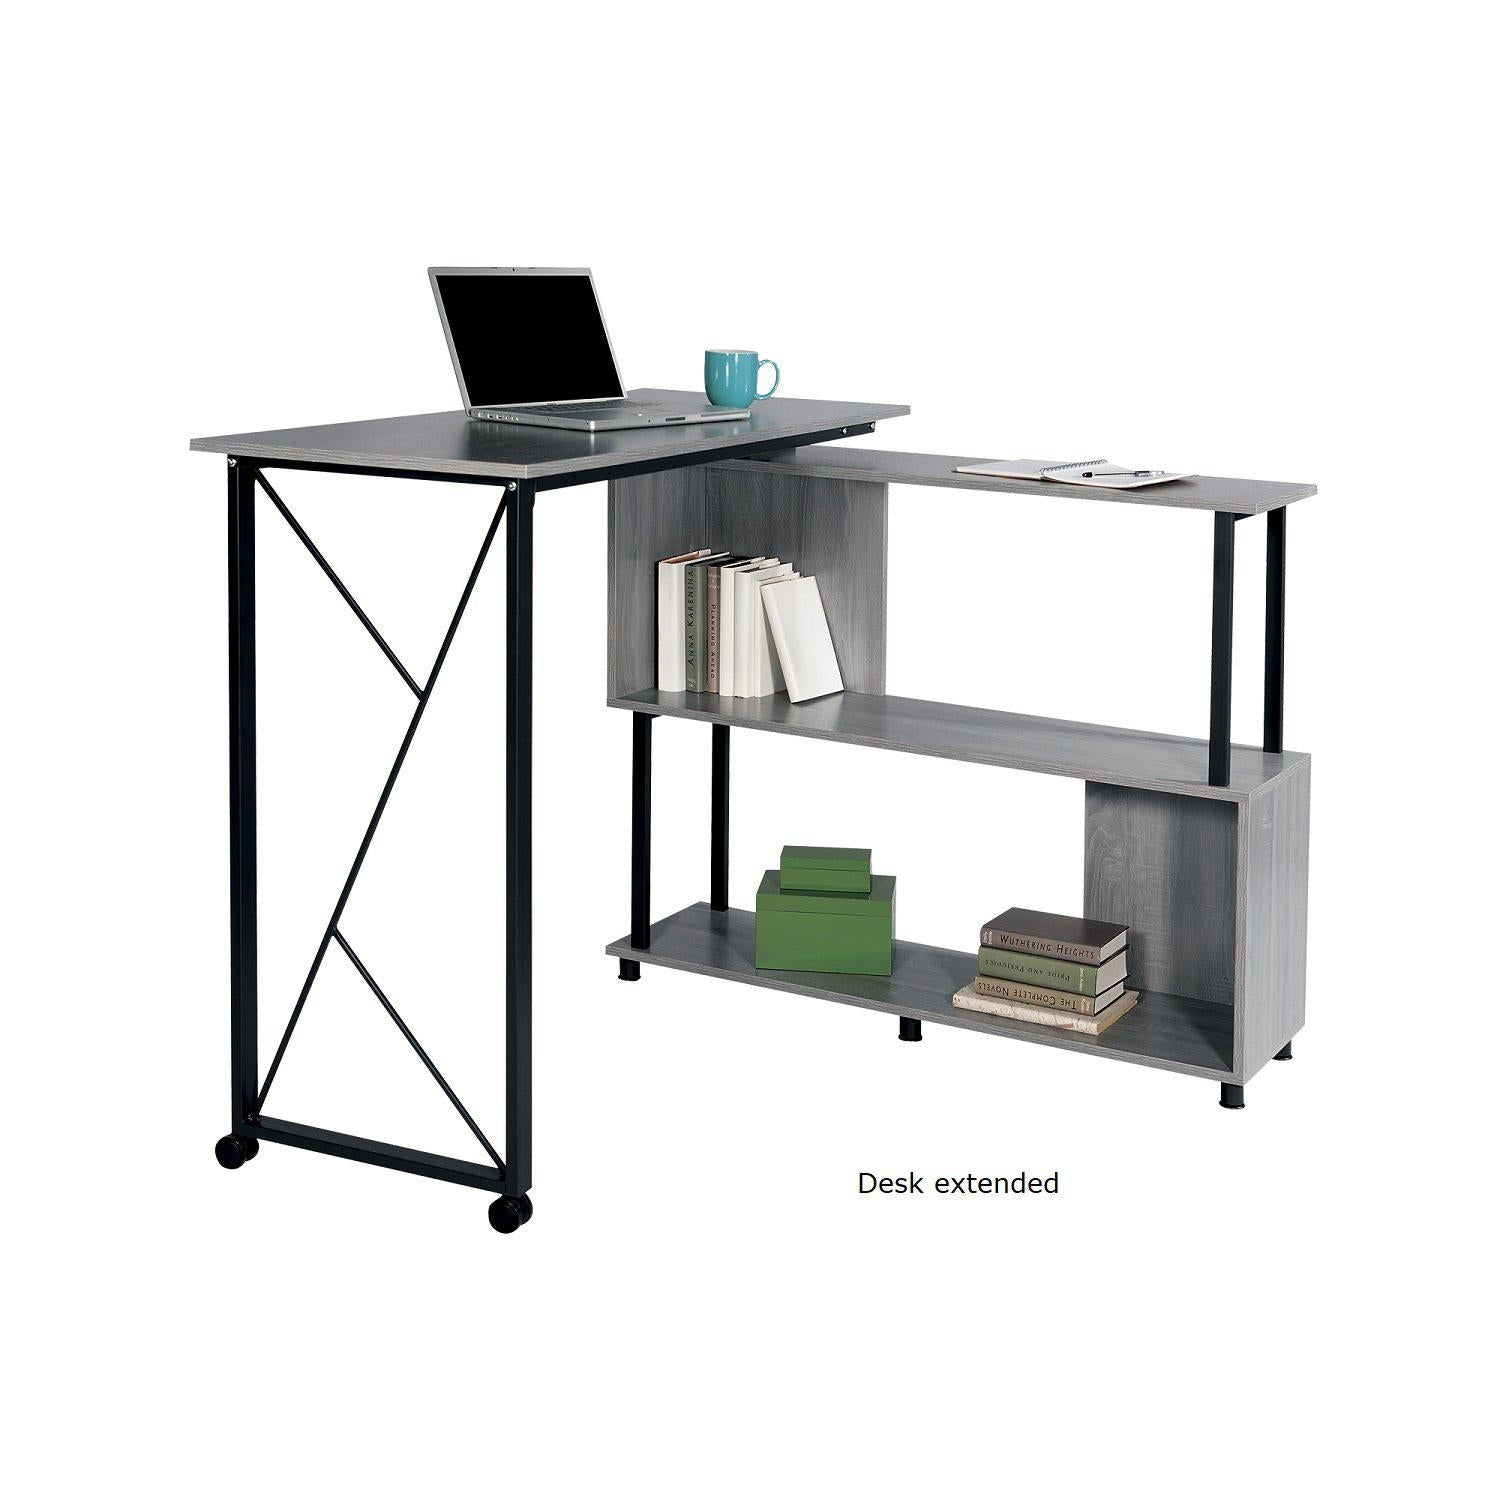 Mood™ Standing Height Desk with Rotating Work Surface